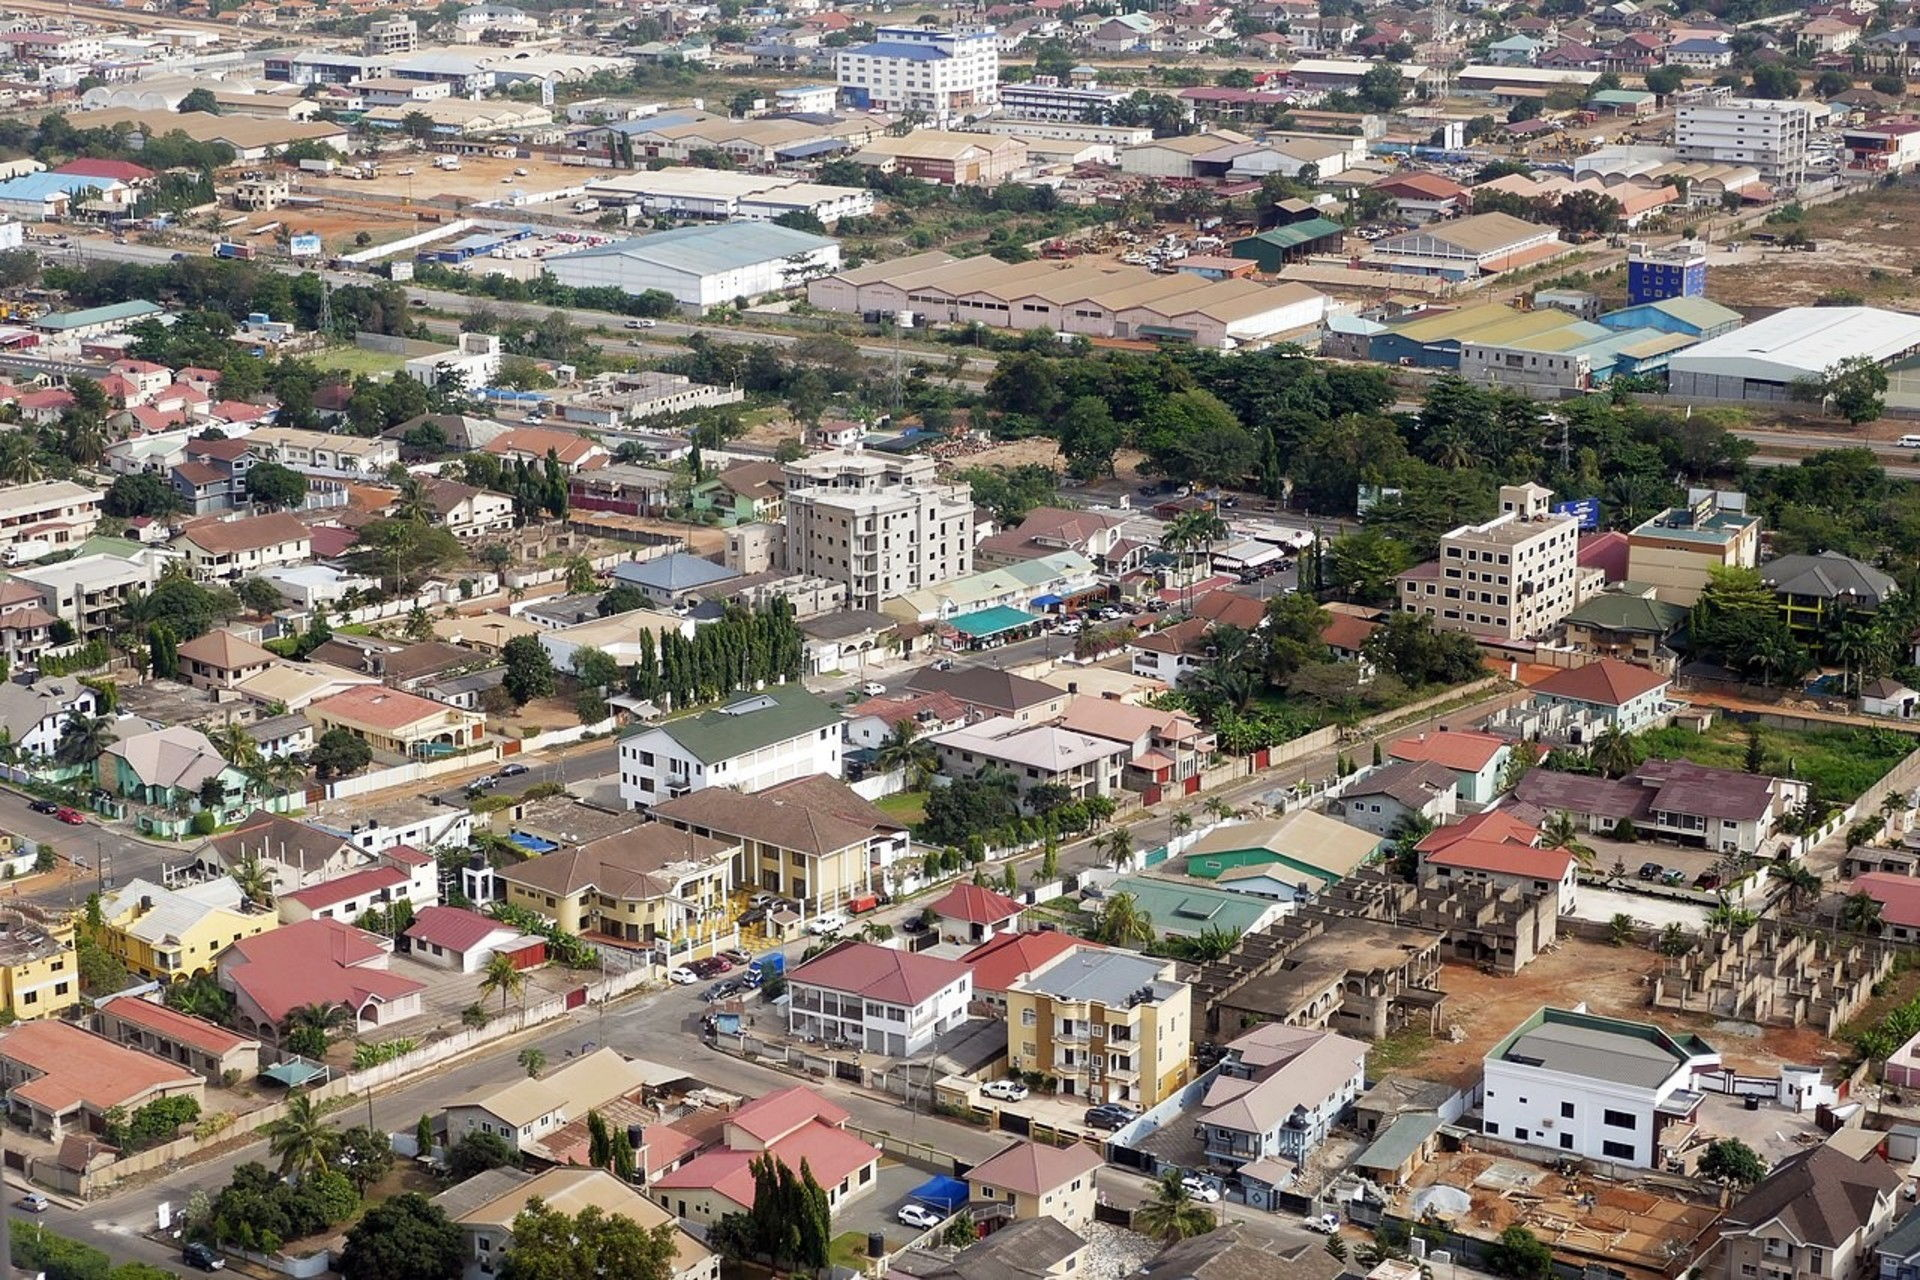 Accra from the air